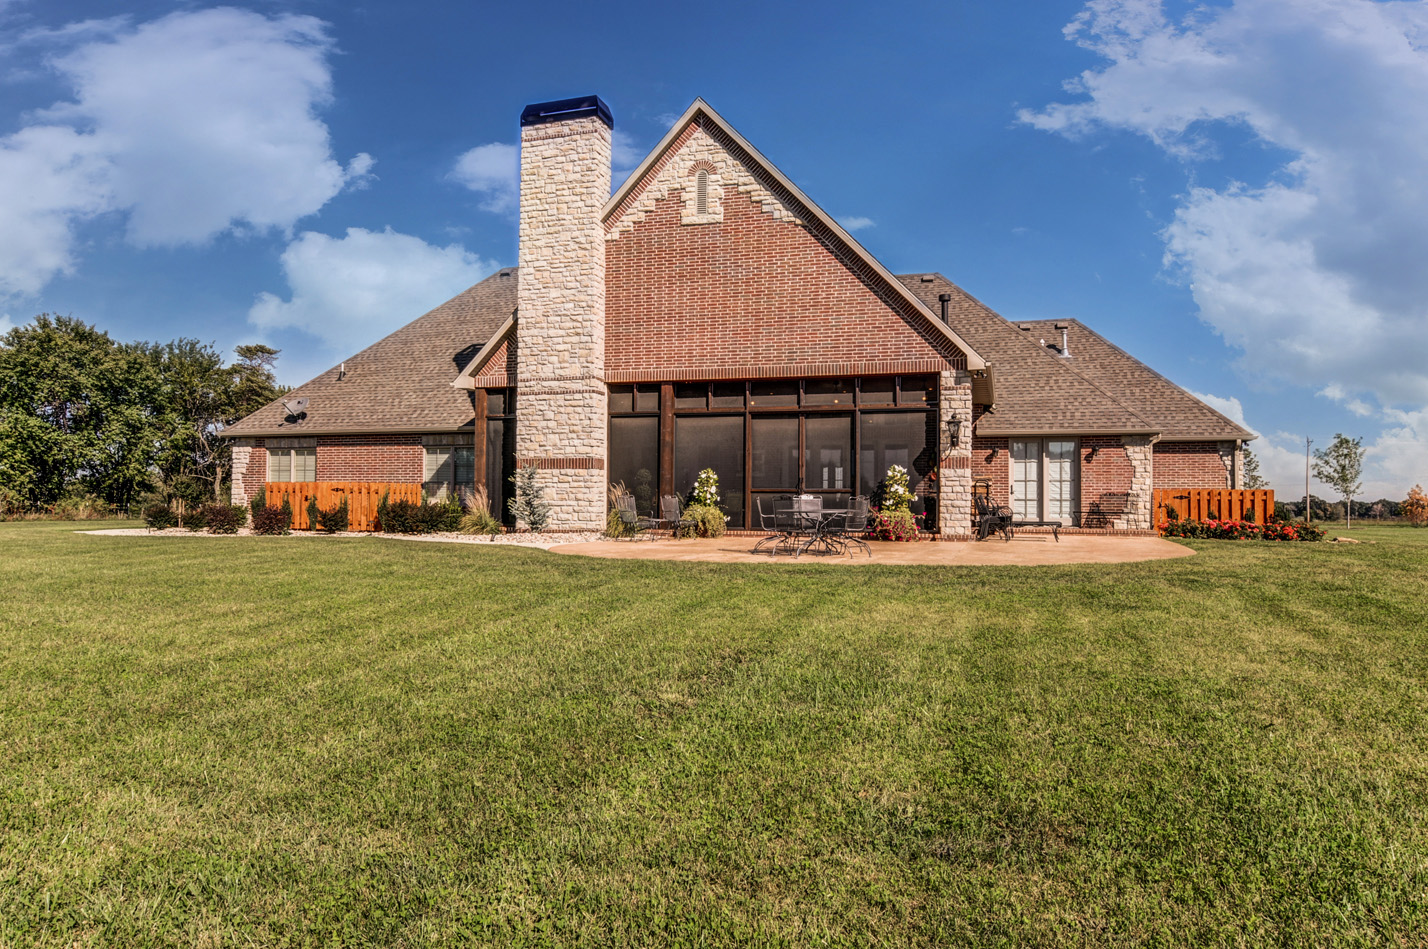 built-by-brett-custom-home-springfield-mo-13735-lawrence-2100-exterior-005.jpg